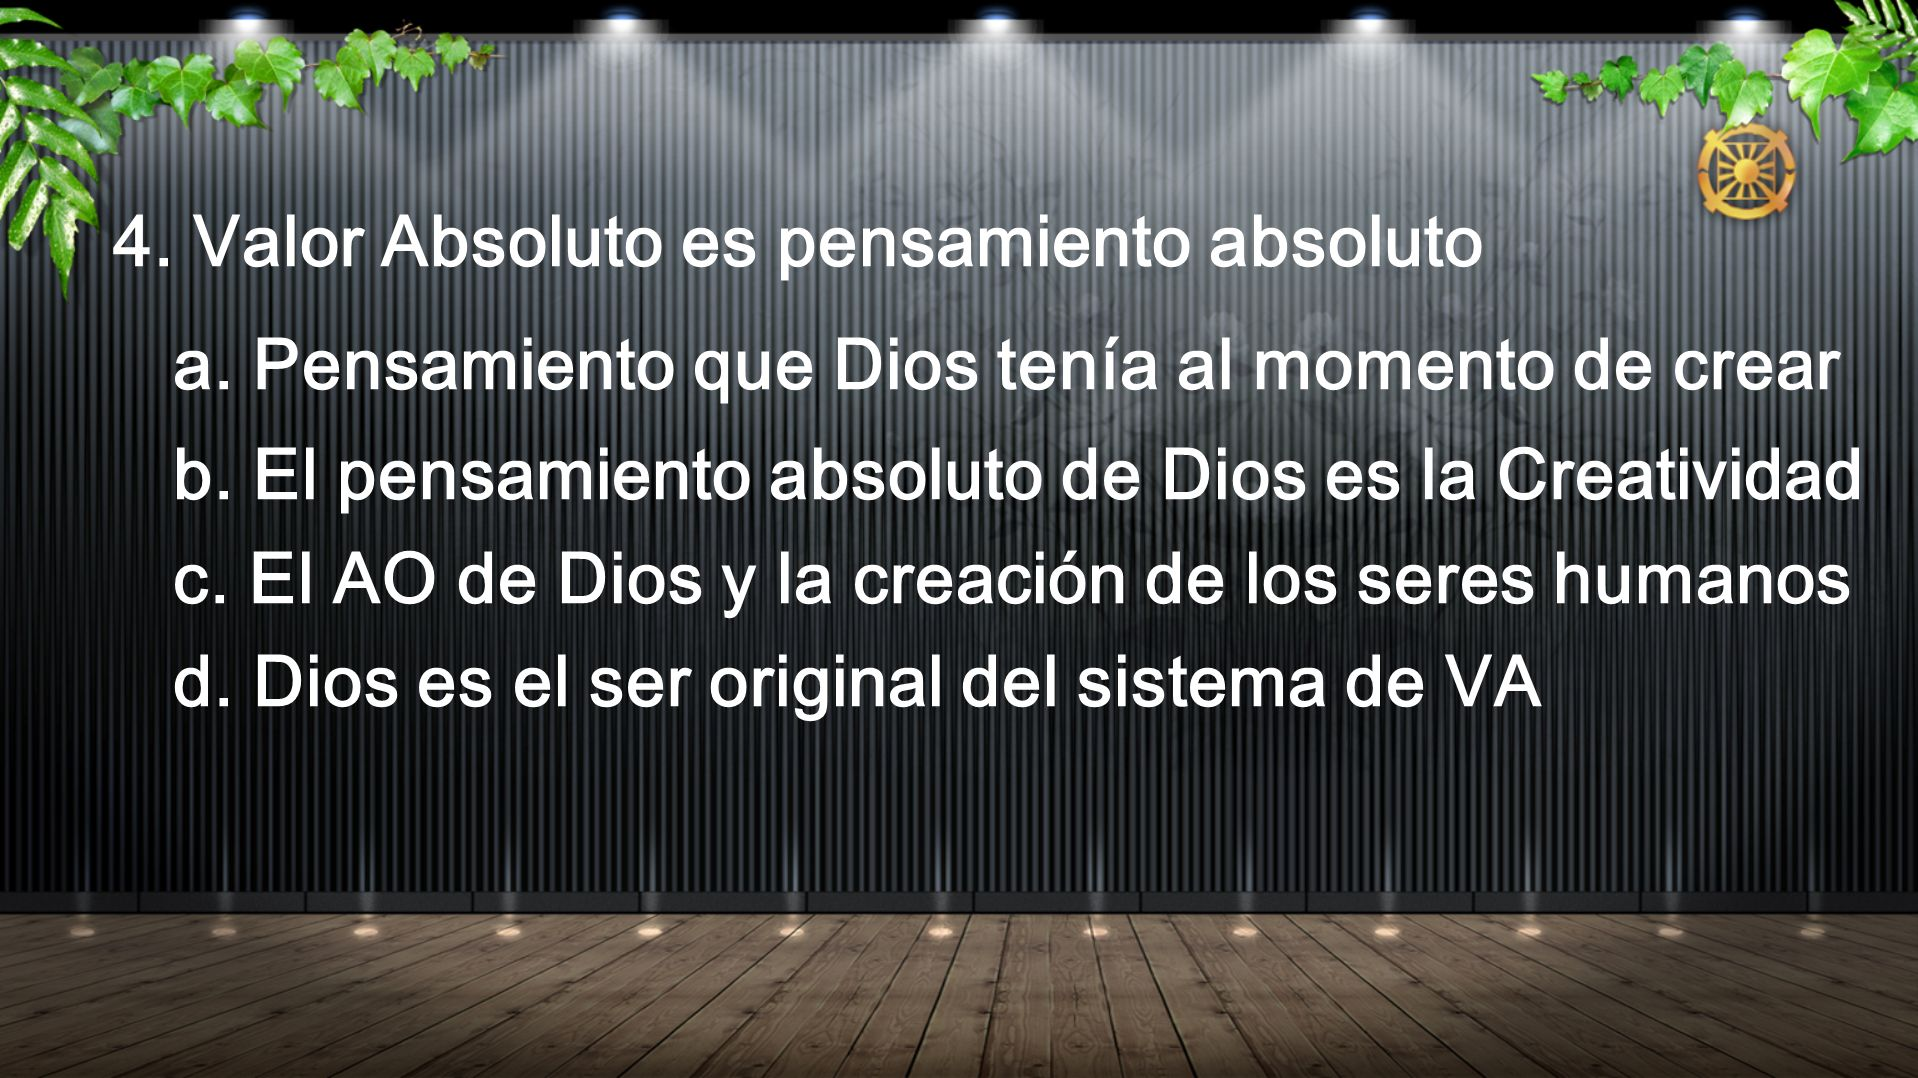 4. Valor Absoluto es pensamiento absoluto